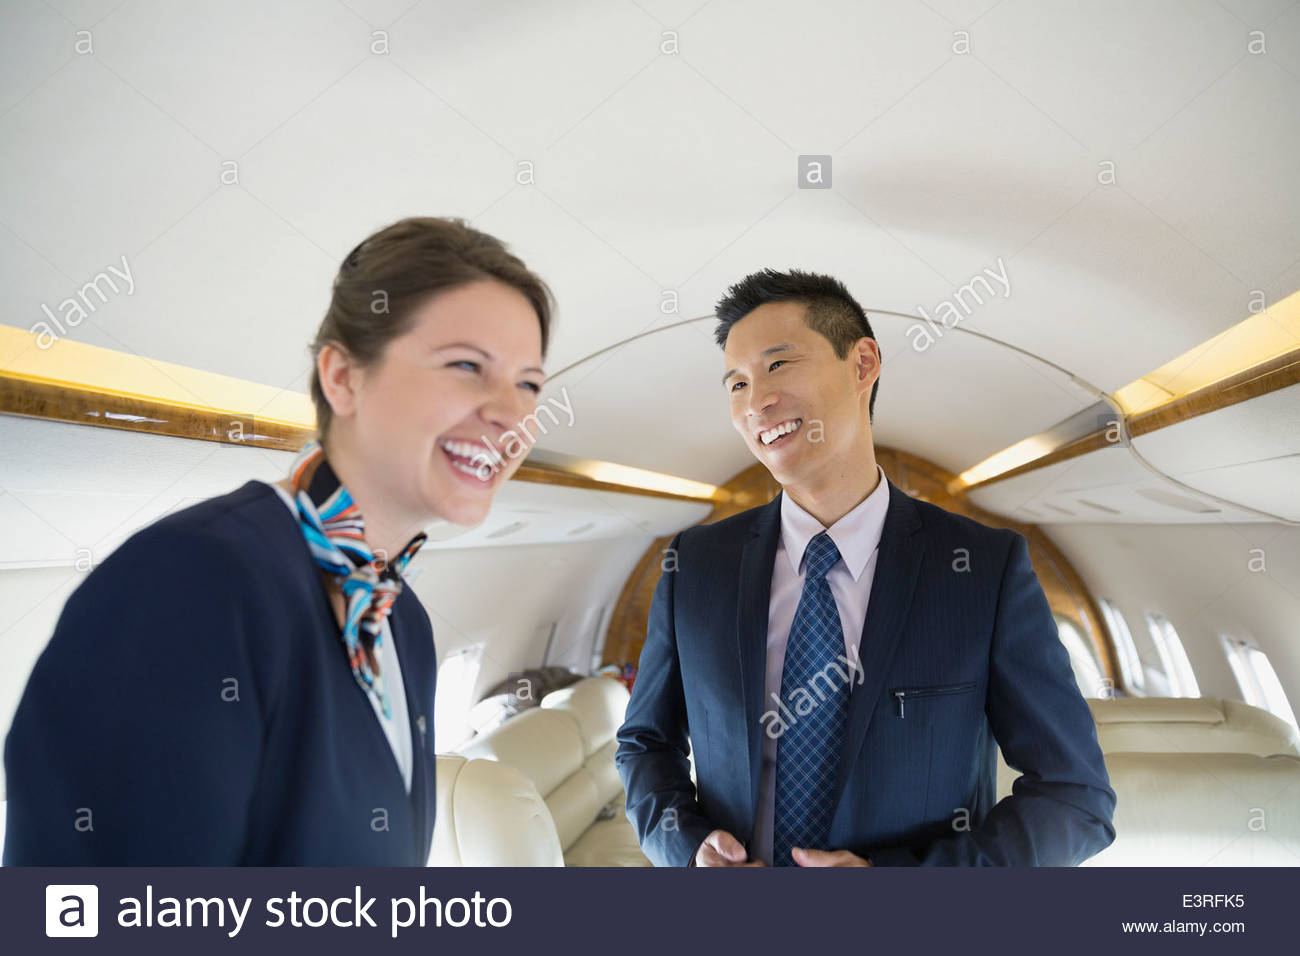 Businessman and flight attendant laughing on corporate jet - Stock Image